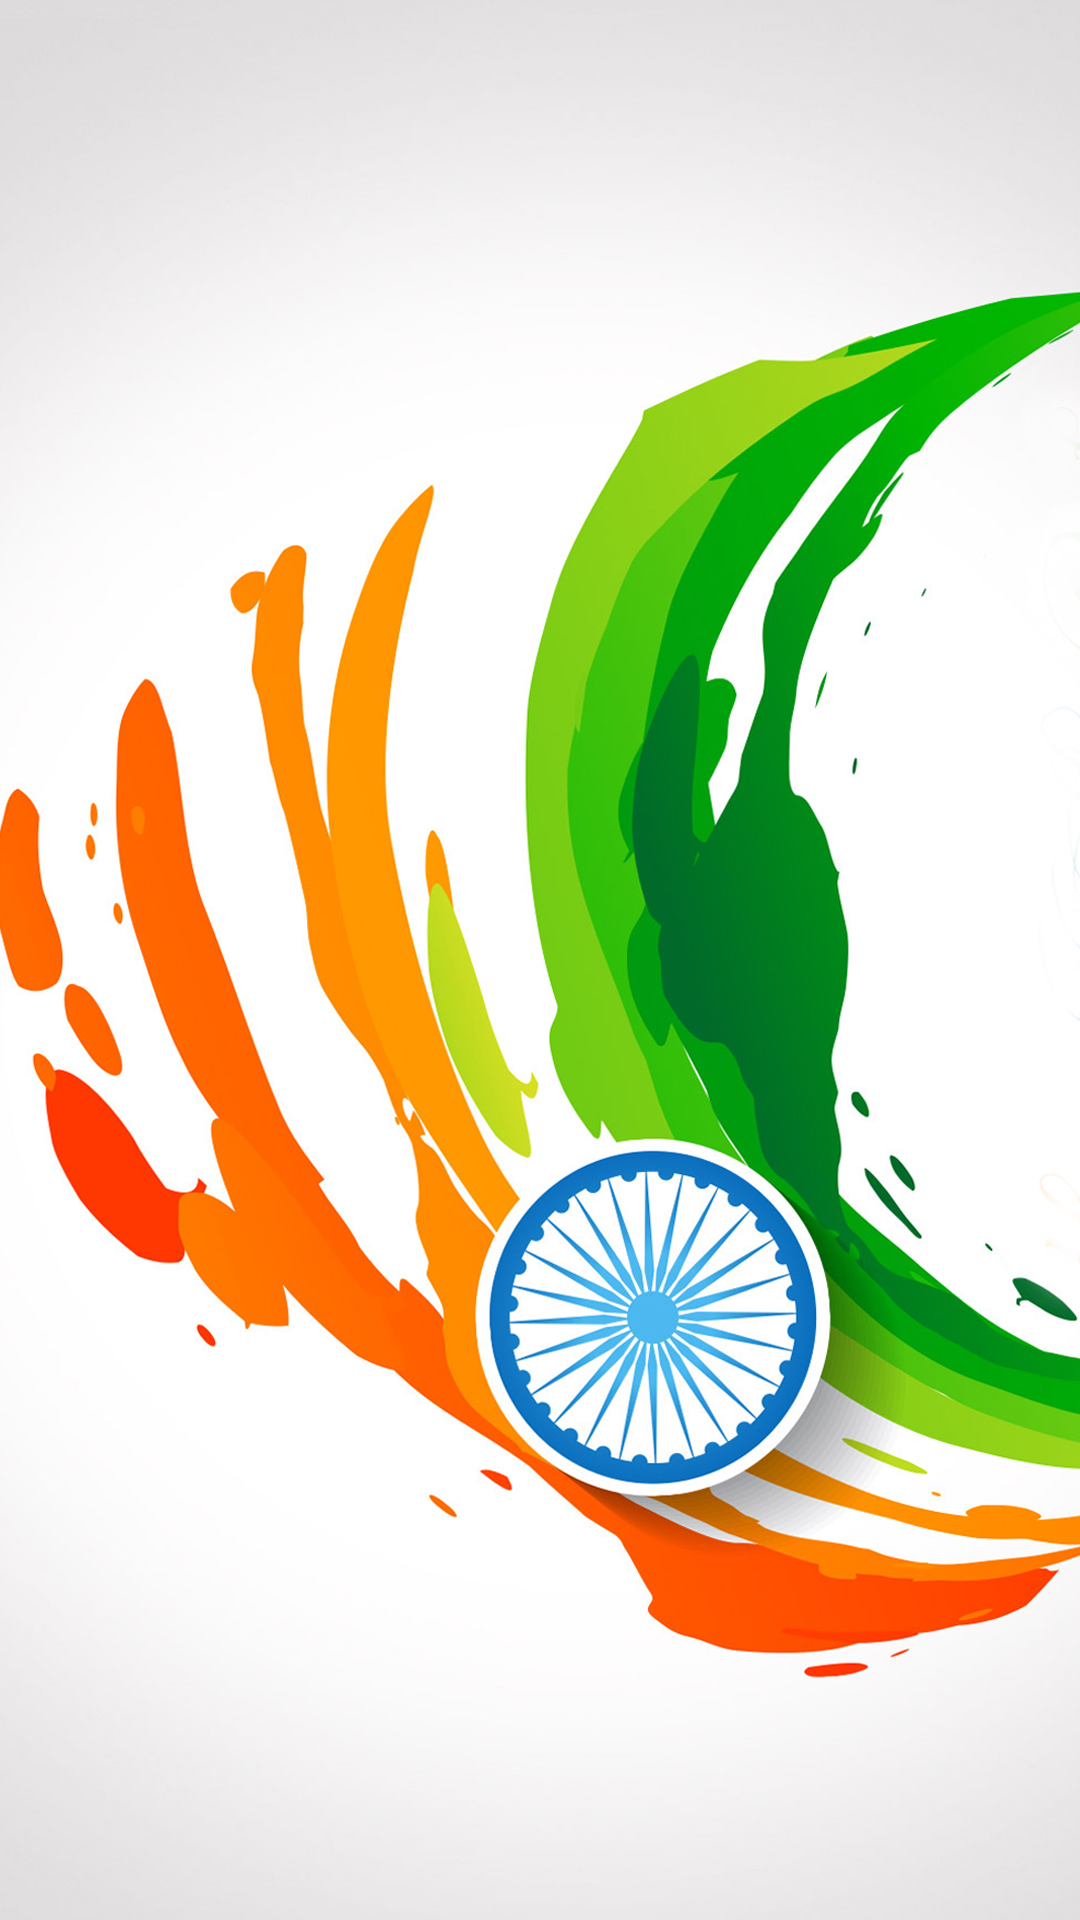 India Flag for Mobile Phone Wallpaper 14 of 17 – Abstract ...